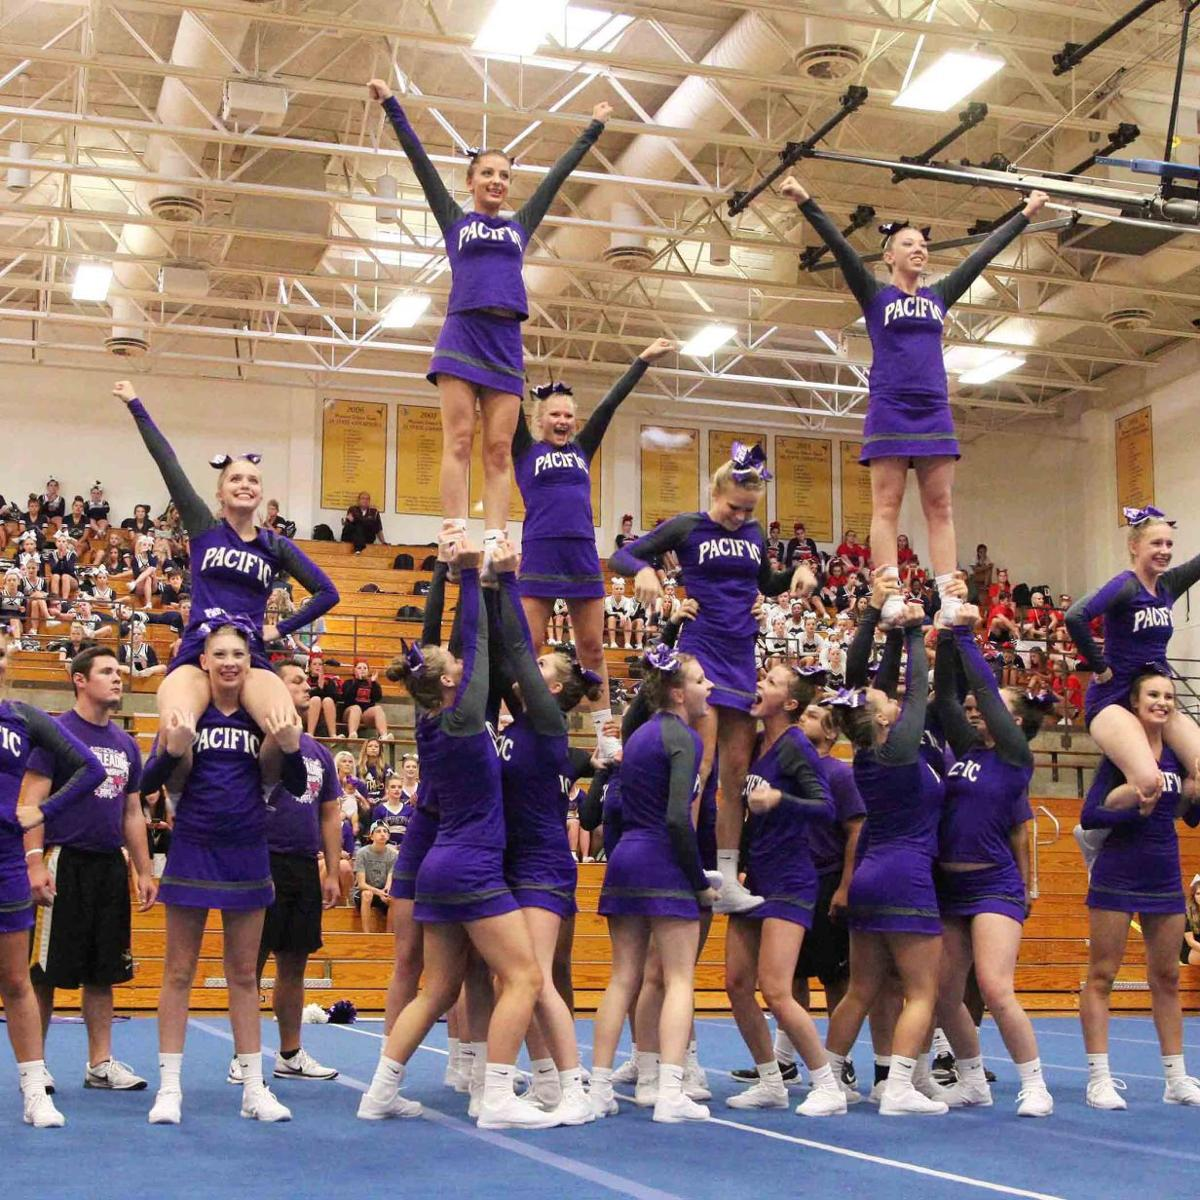 Pacific Cheer 2